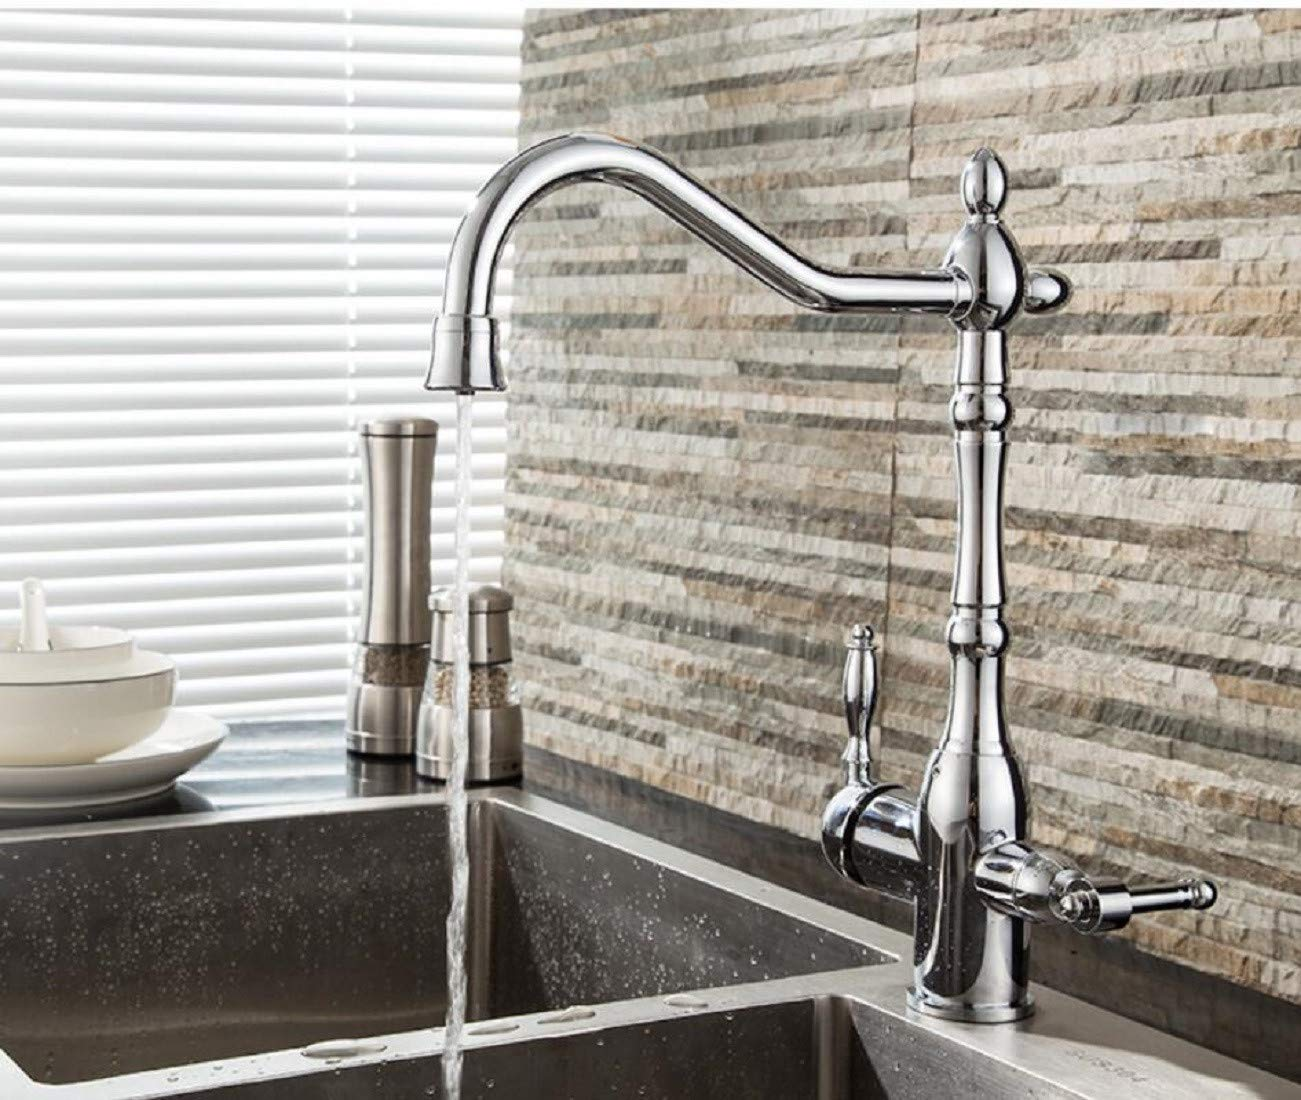 Kitchen Faucet Three-In-One Water Purifier Kitchen Hot And Cold Water Purifier Sink Dishwasher Sink Three-In-One Water Tap Kitchen Sink Faucets Basin Mixer Faucet